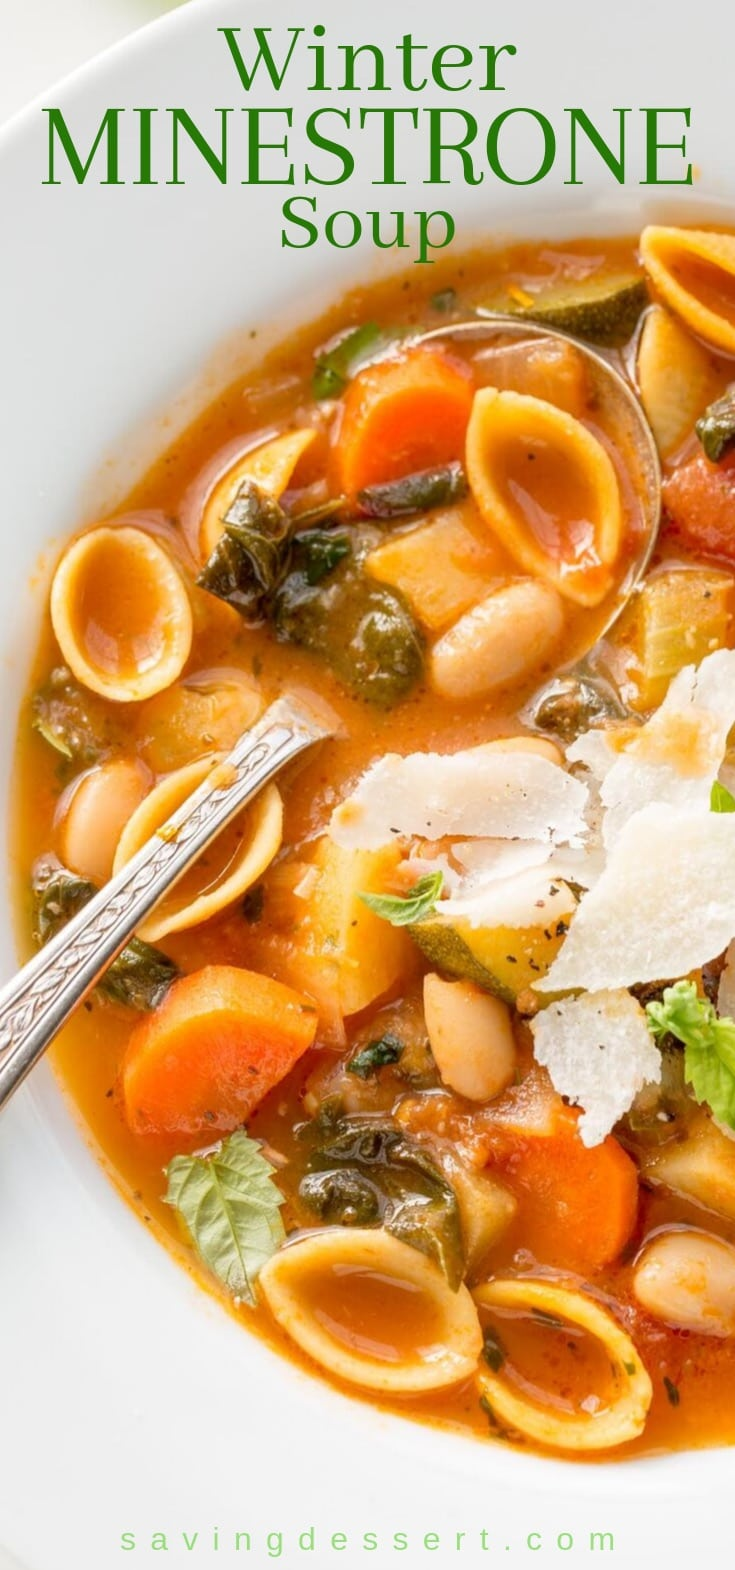 A bowl of winter minestrone soup with pasta and greens